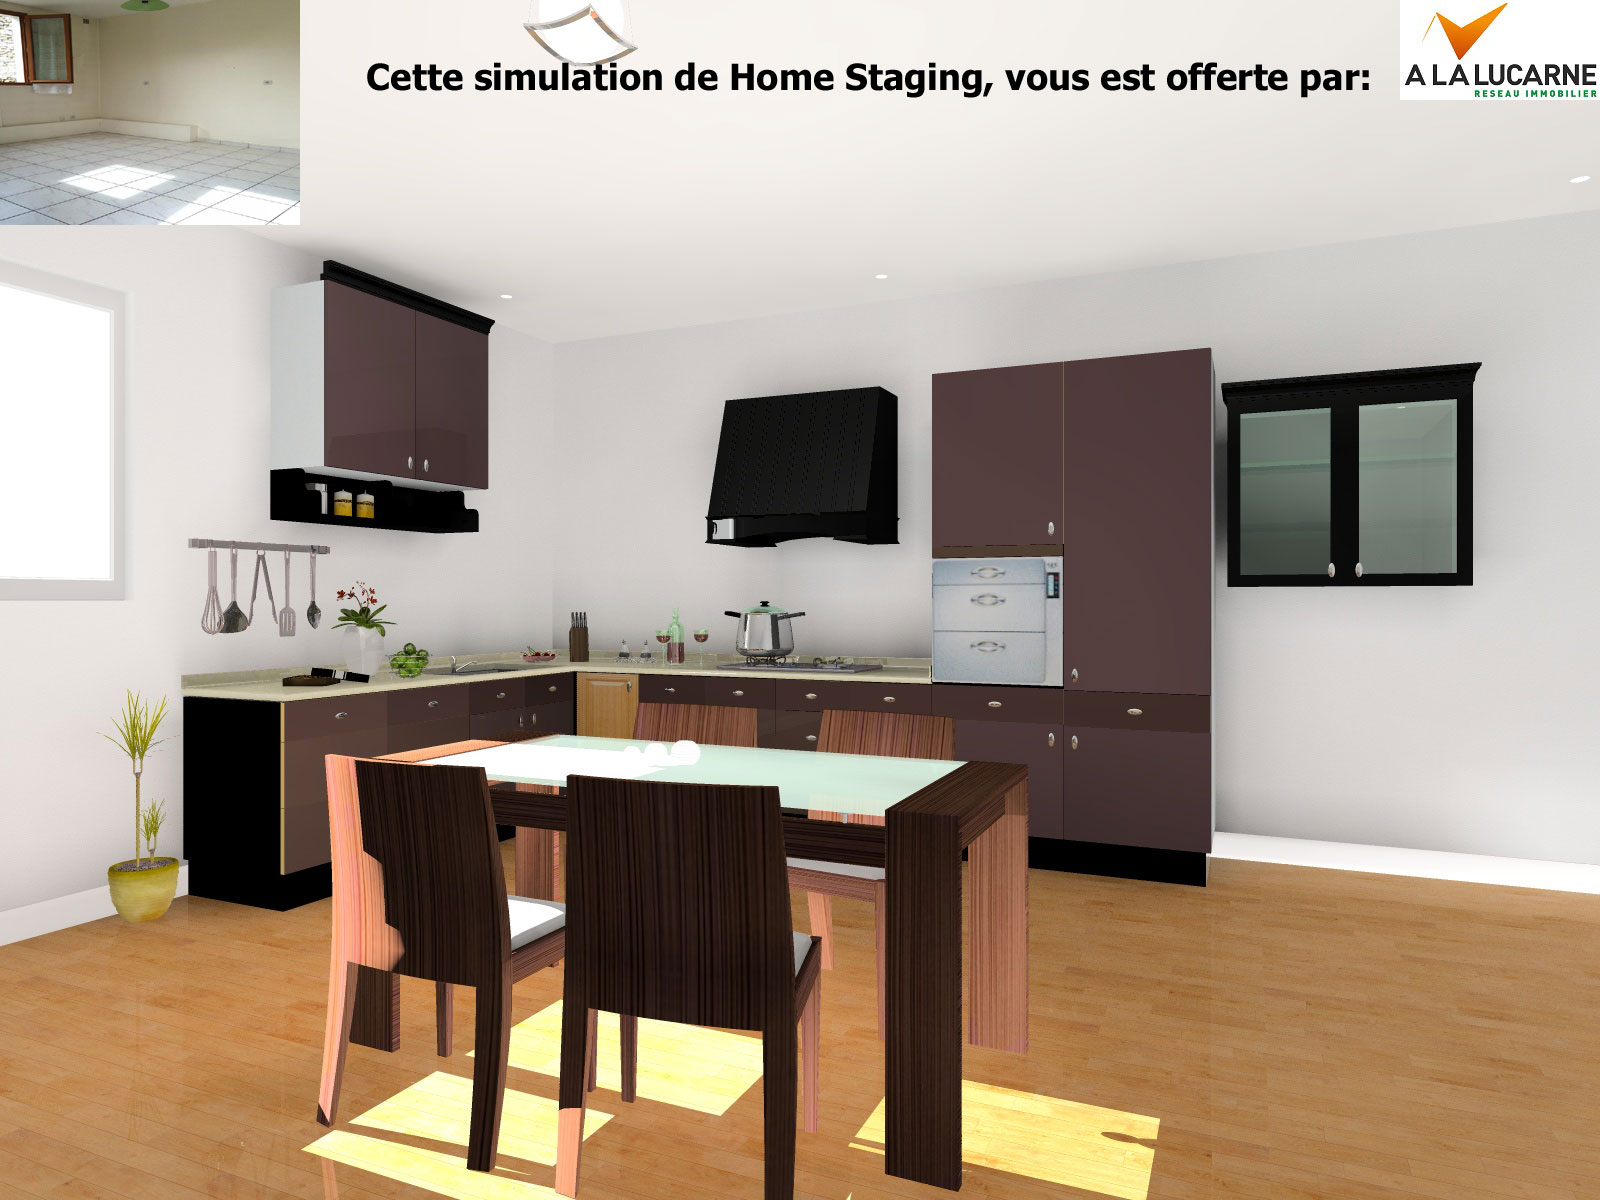 home staging virtuel technos a la lucarne de l 39 immobilier. Black Bedroom Furniture Sets. Home Design Ideas